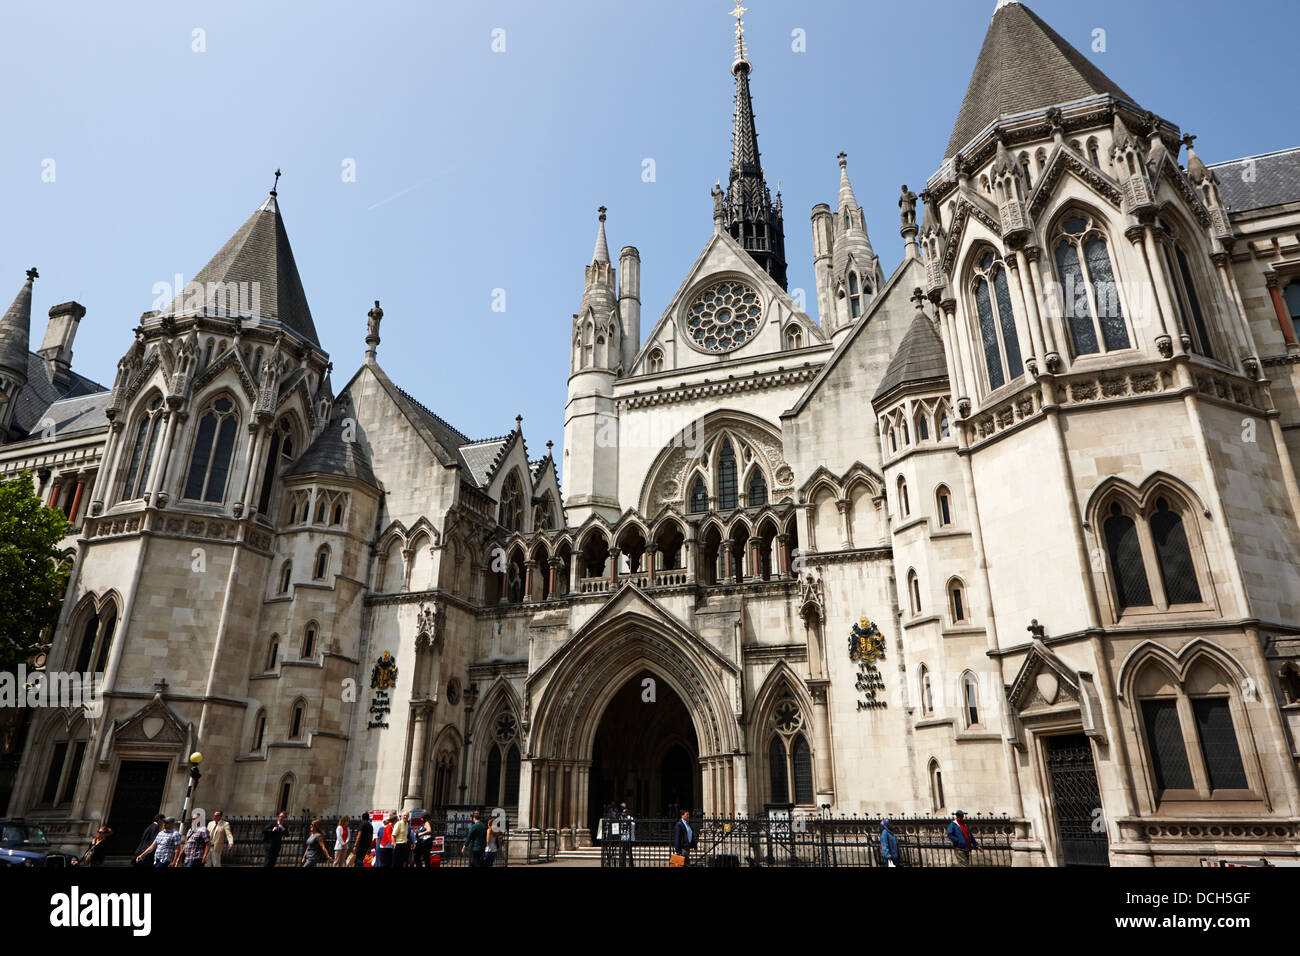 the royal courts of justice London England UK - Stock Image